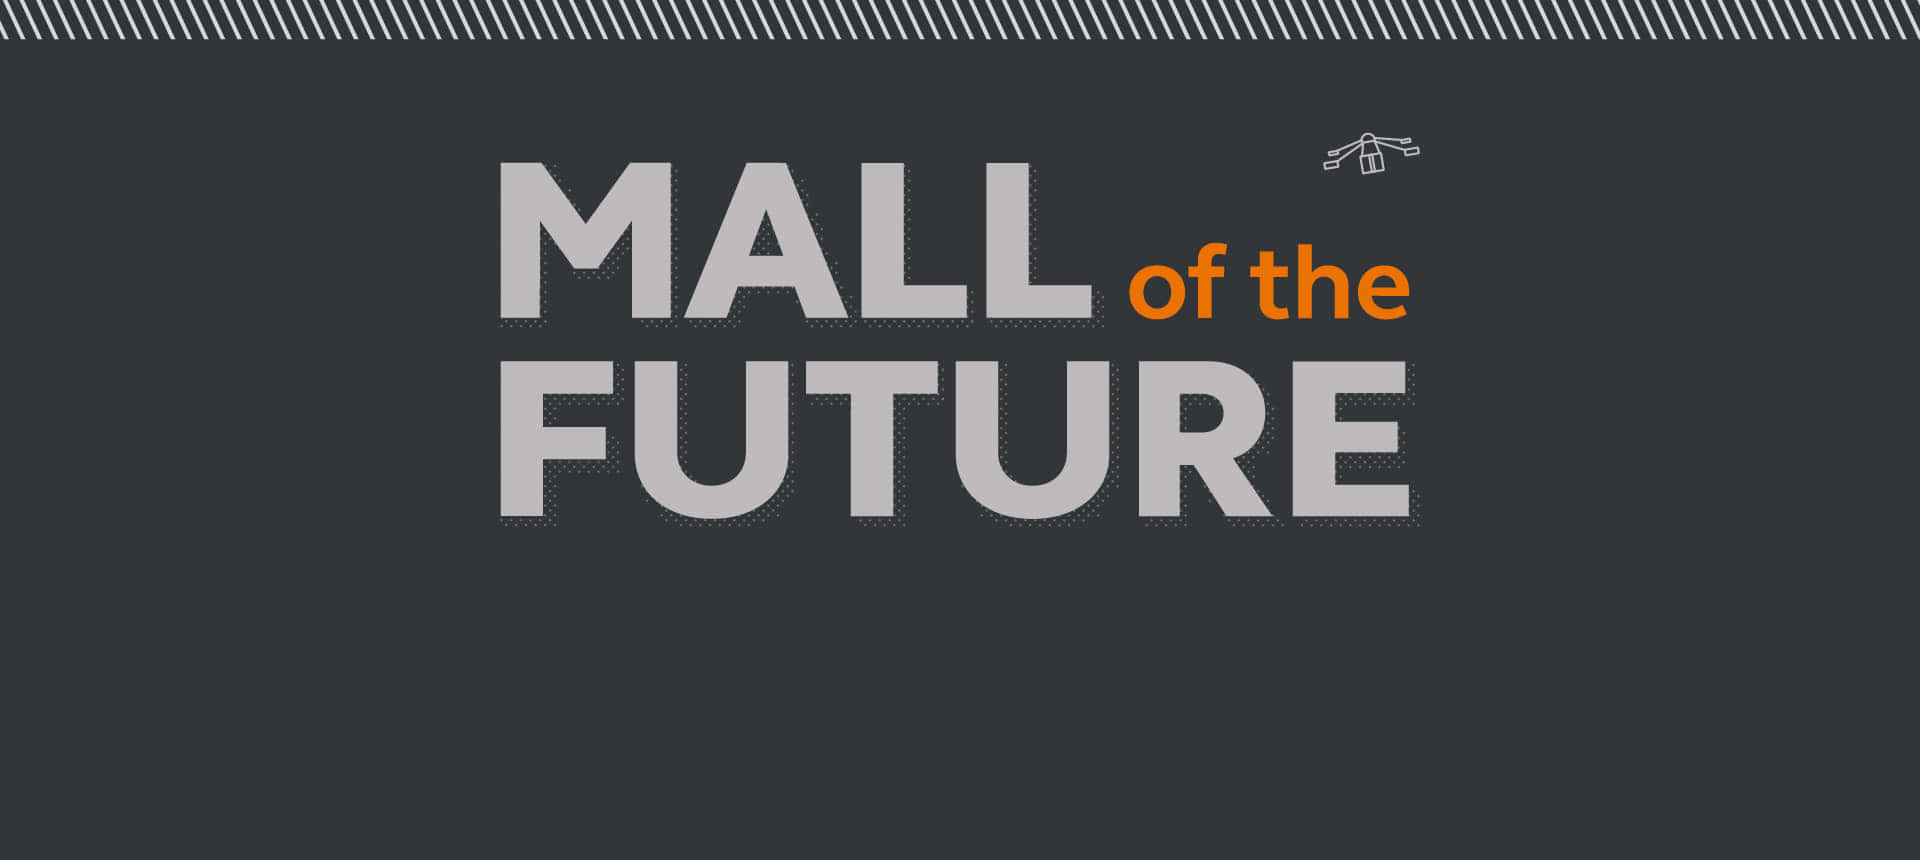 Mall of the Future